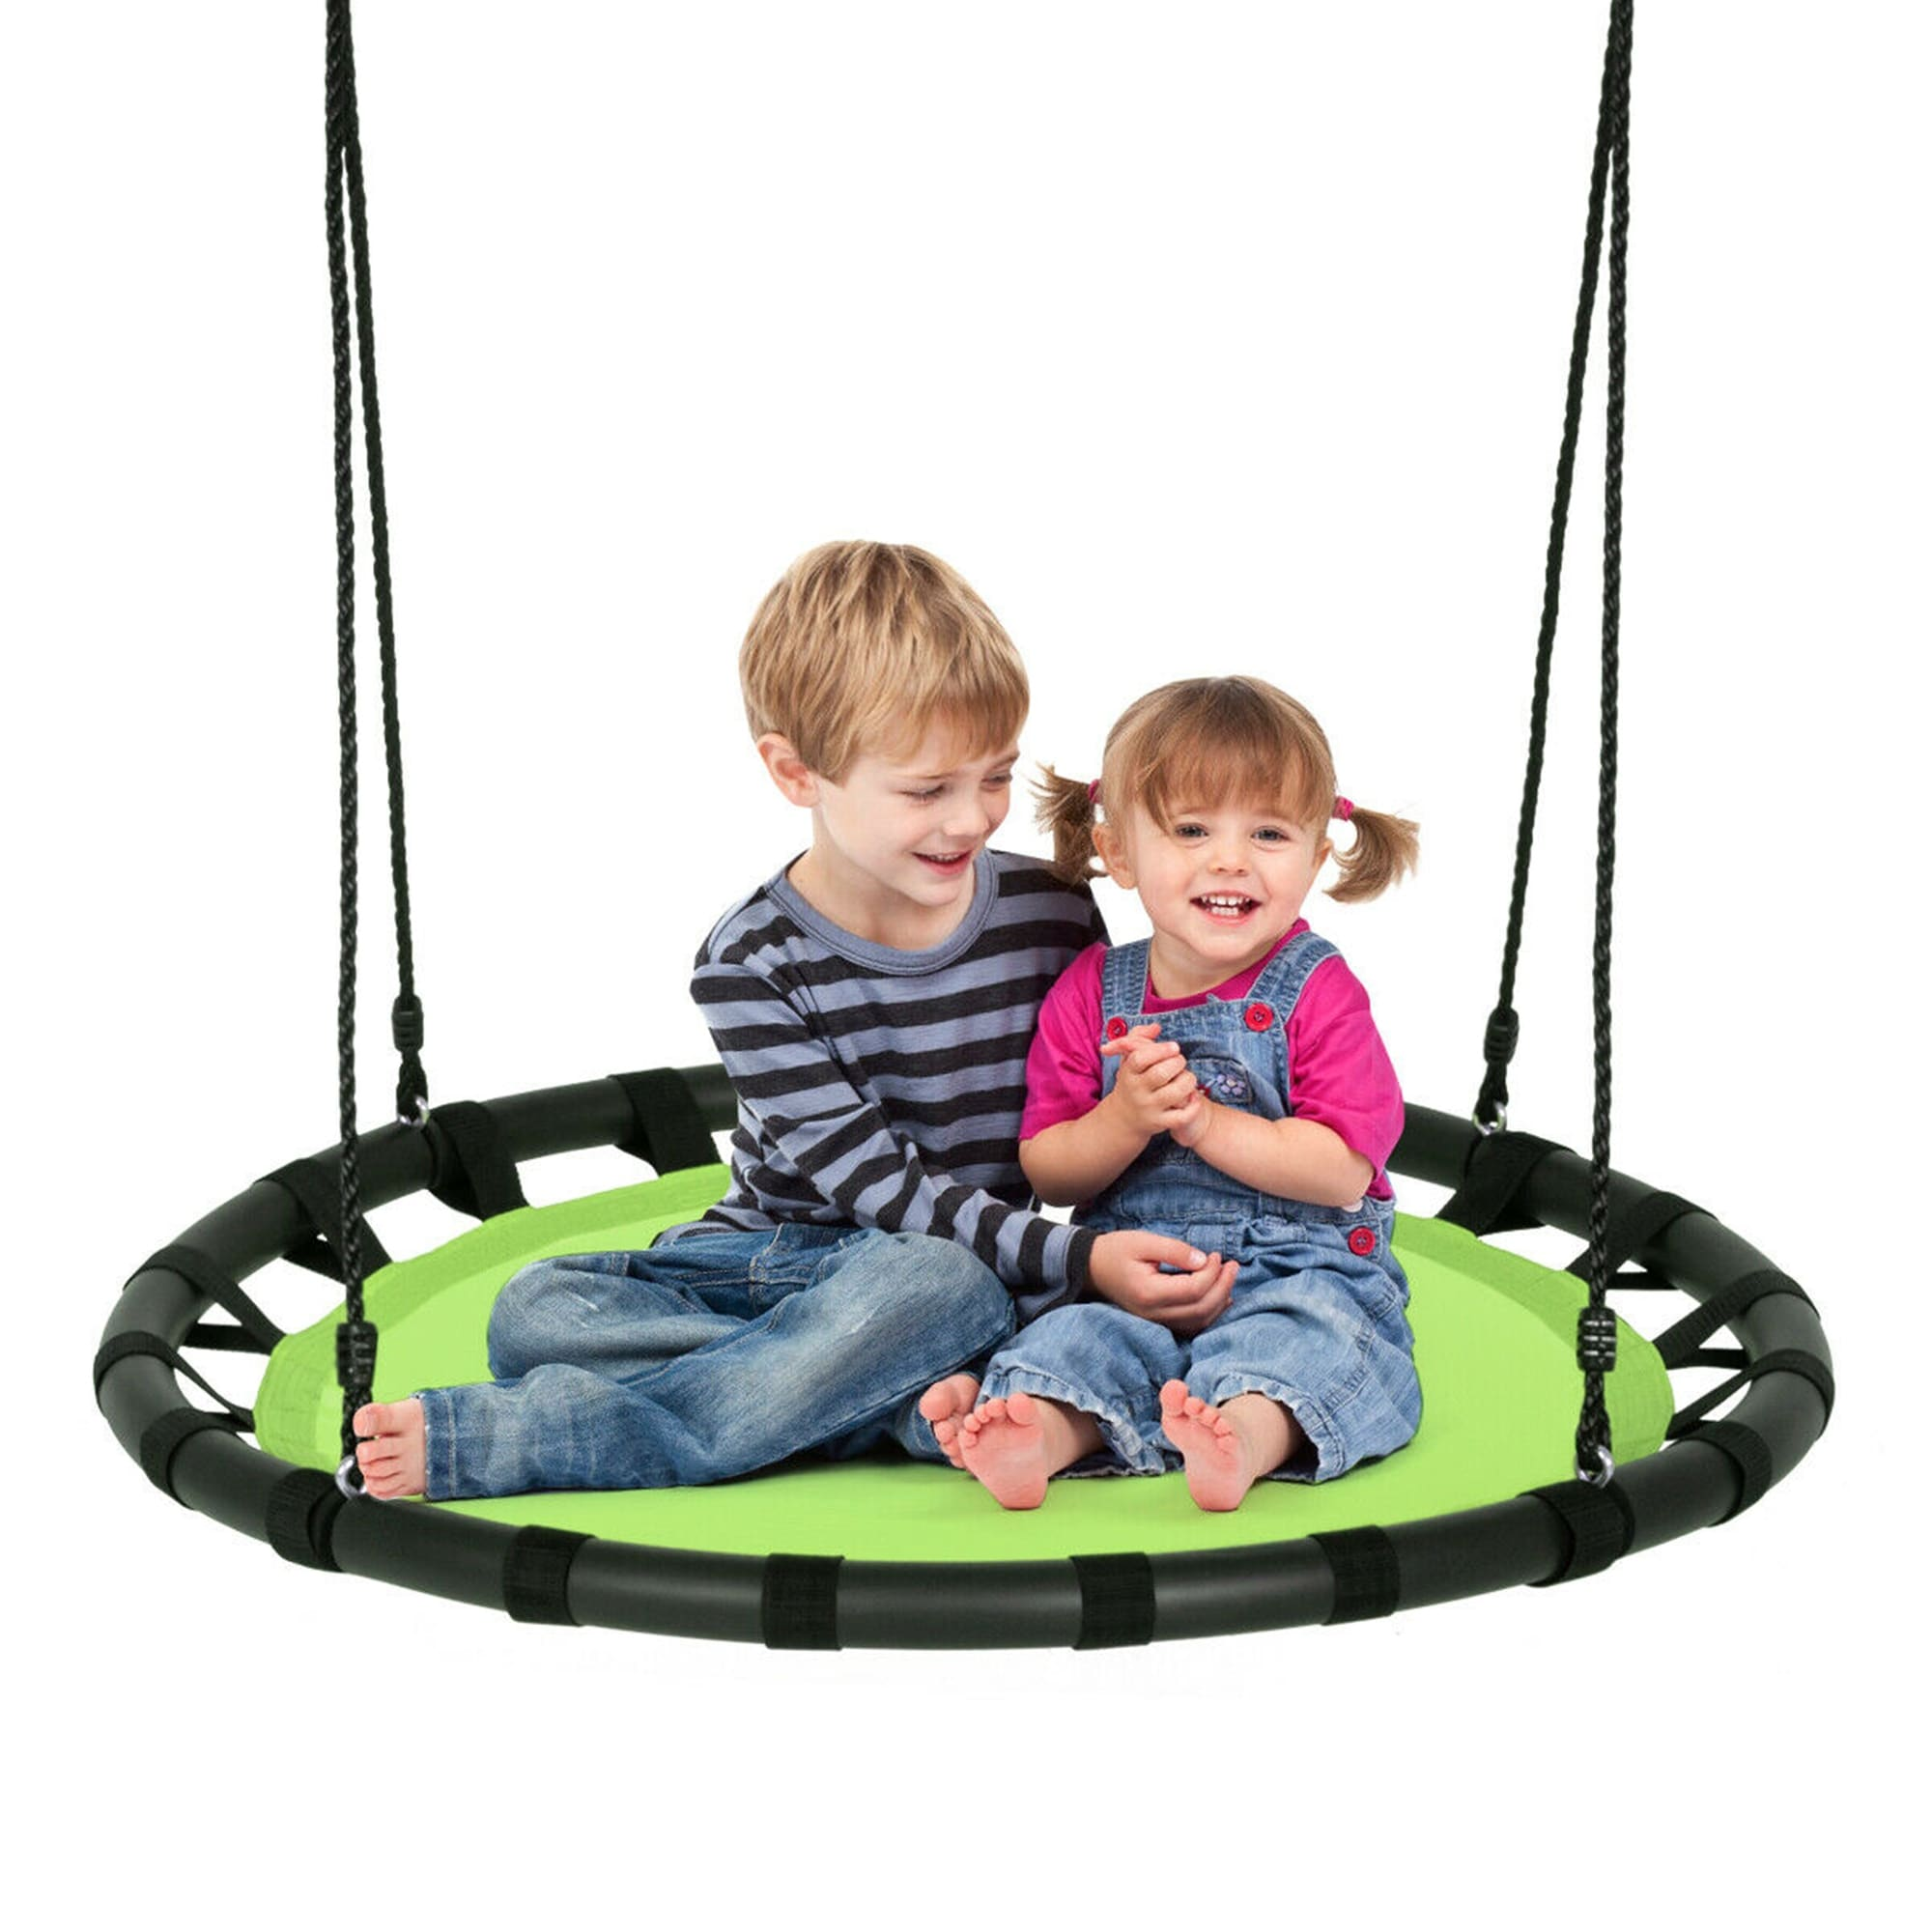 Gymax 40 Flying Saucer Round Tree Swing Kids Play Set W Adjustable Overstock 32300311